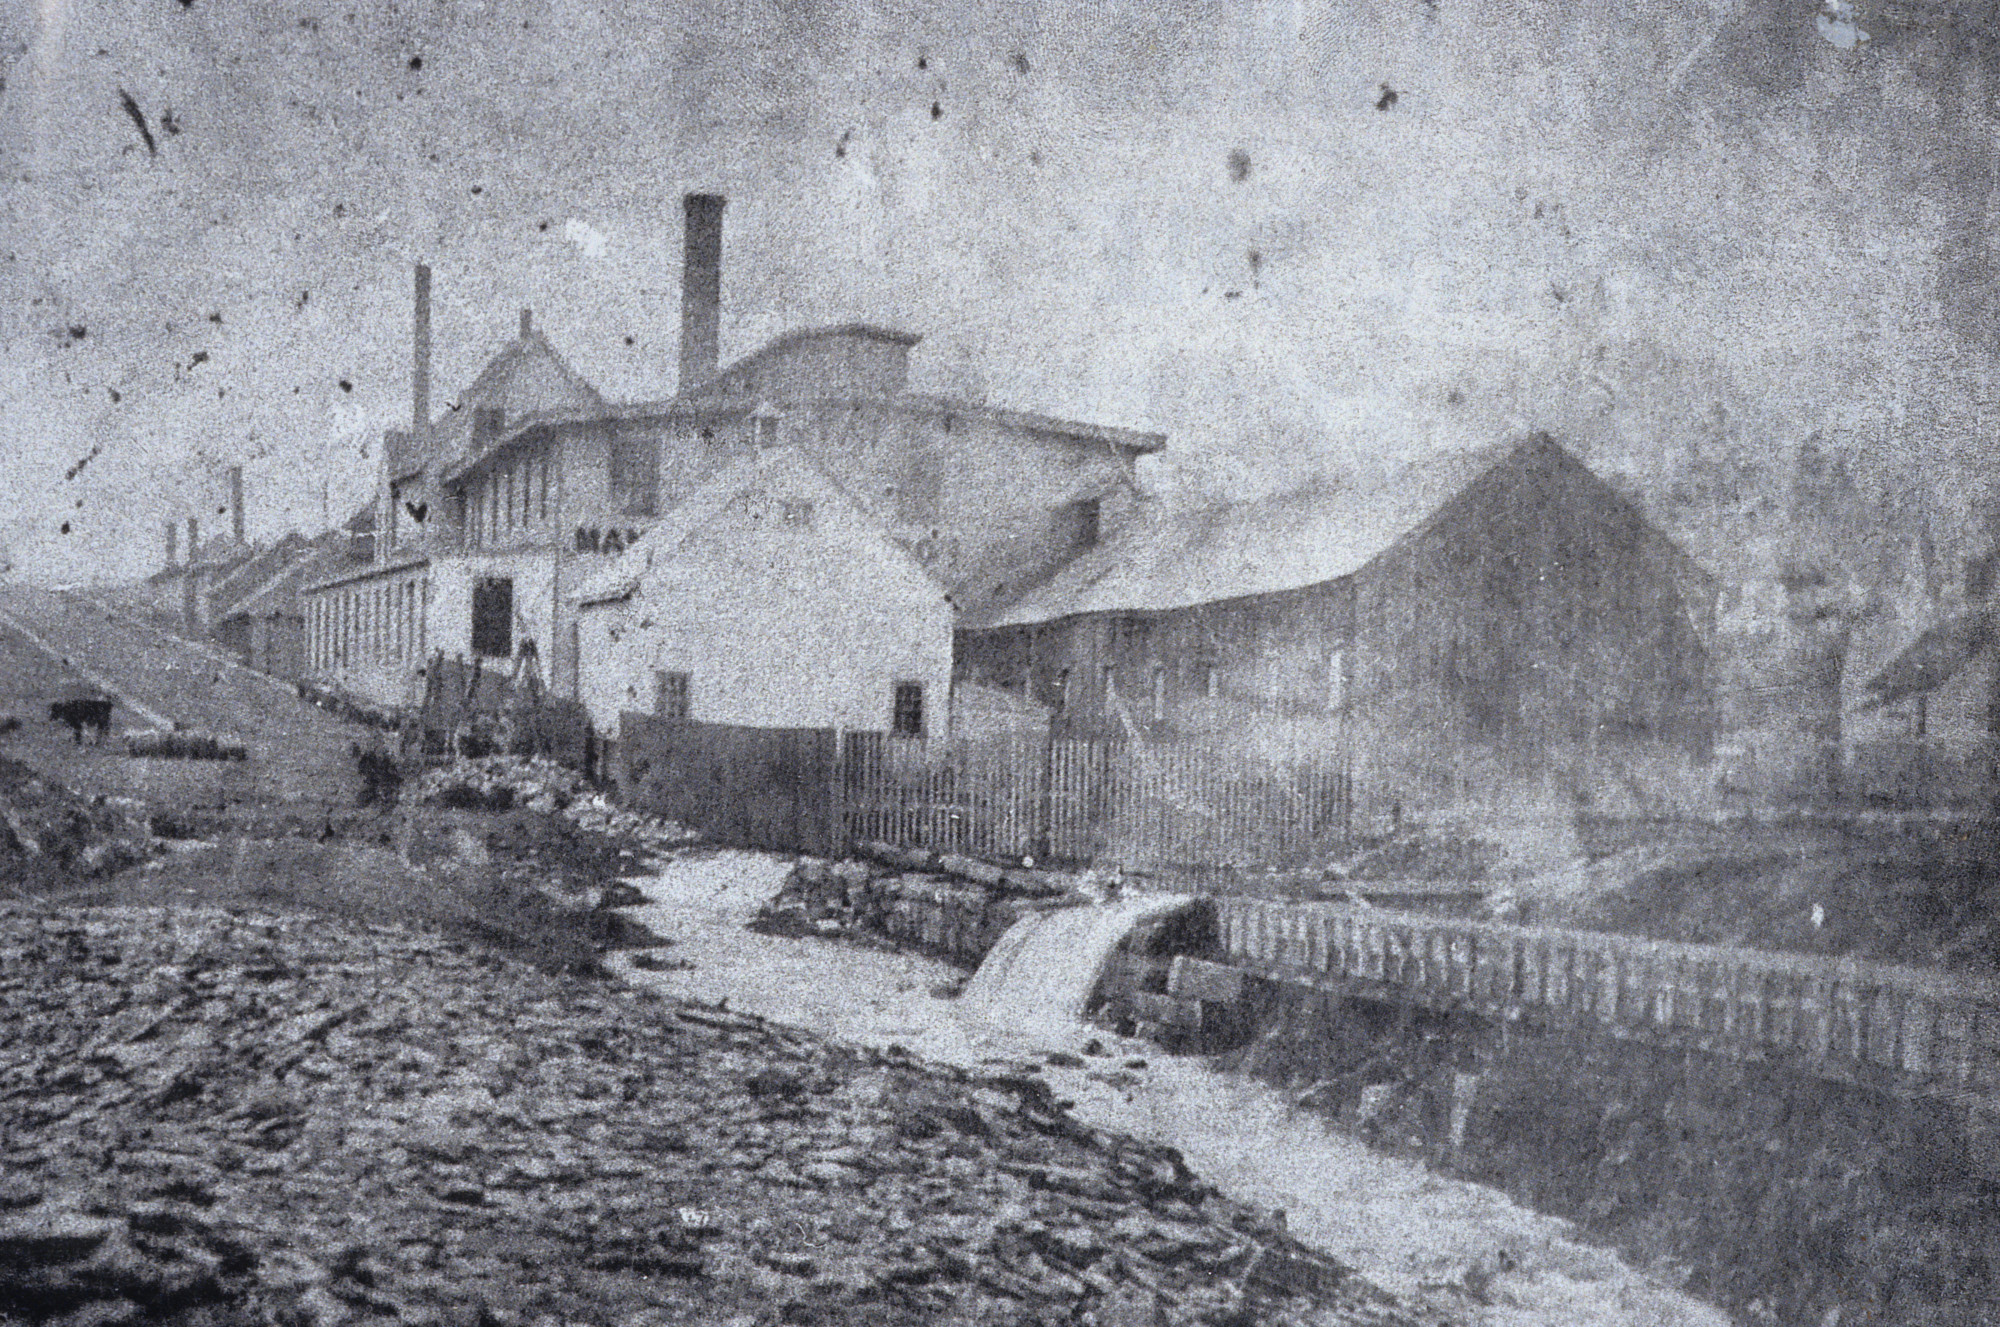 Starr Manufacturing Company visible alongside part of the Dartmouth marine railway. This factory expanded onto the former canal lands and continued to operate until 1996.